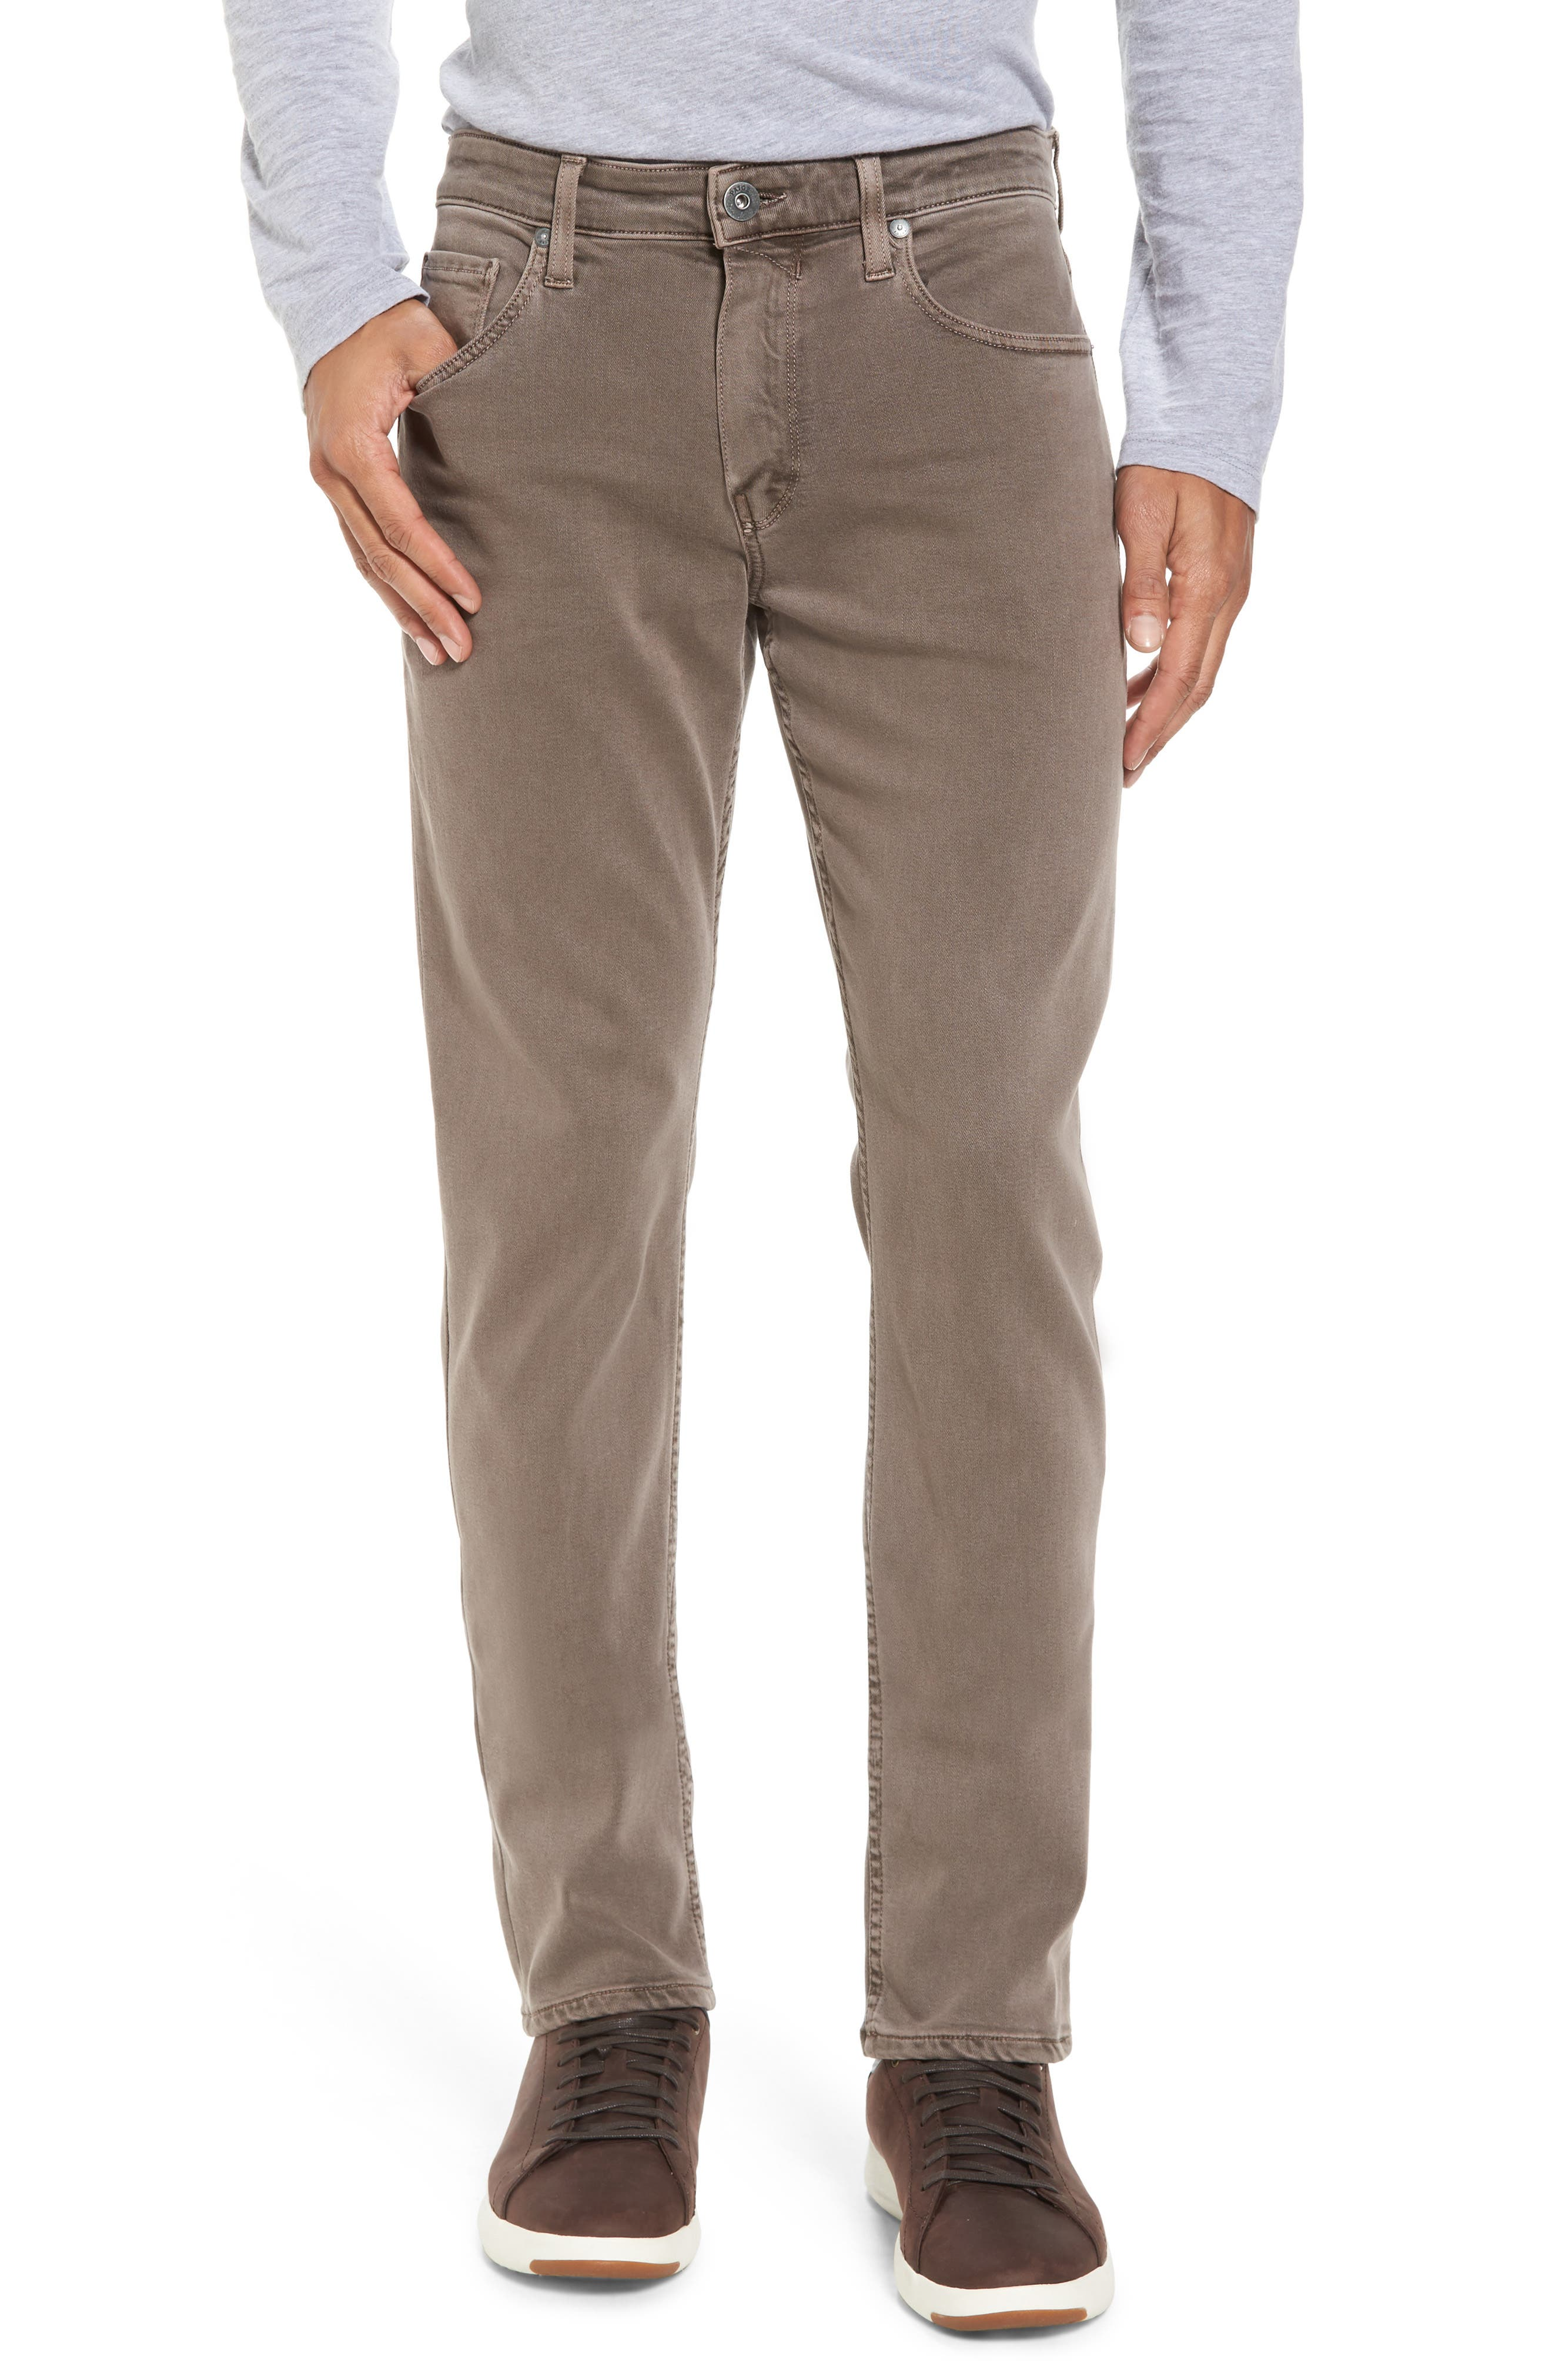 Transcend - Federal Slim Straight Fit Jeans,                         Main,                         color, 200